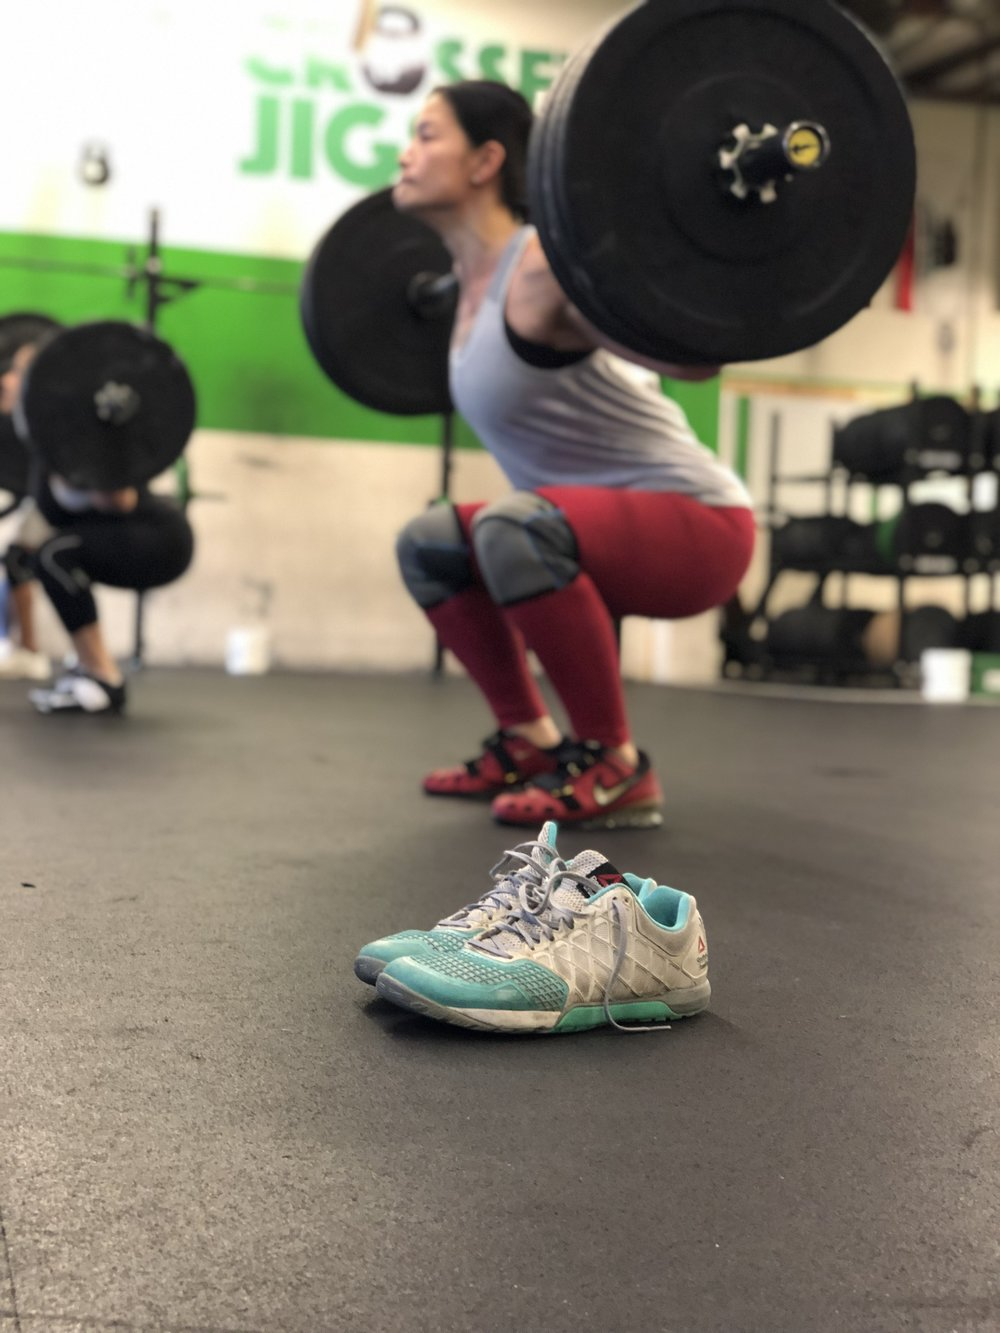 Kat Sun with her old lifting shoes to help her get into better positions!